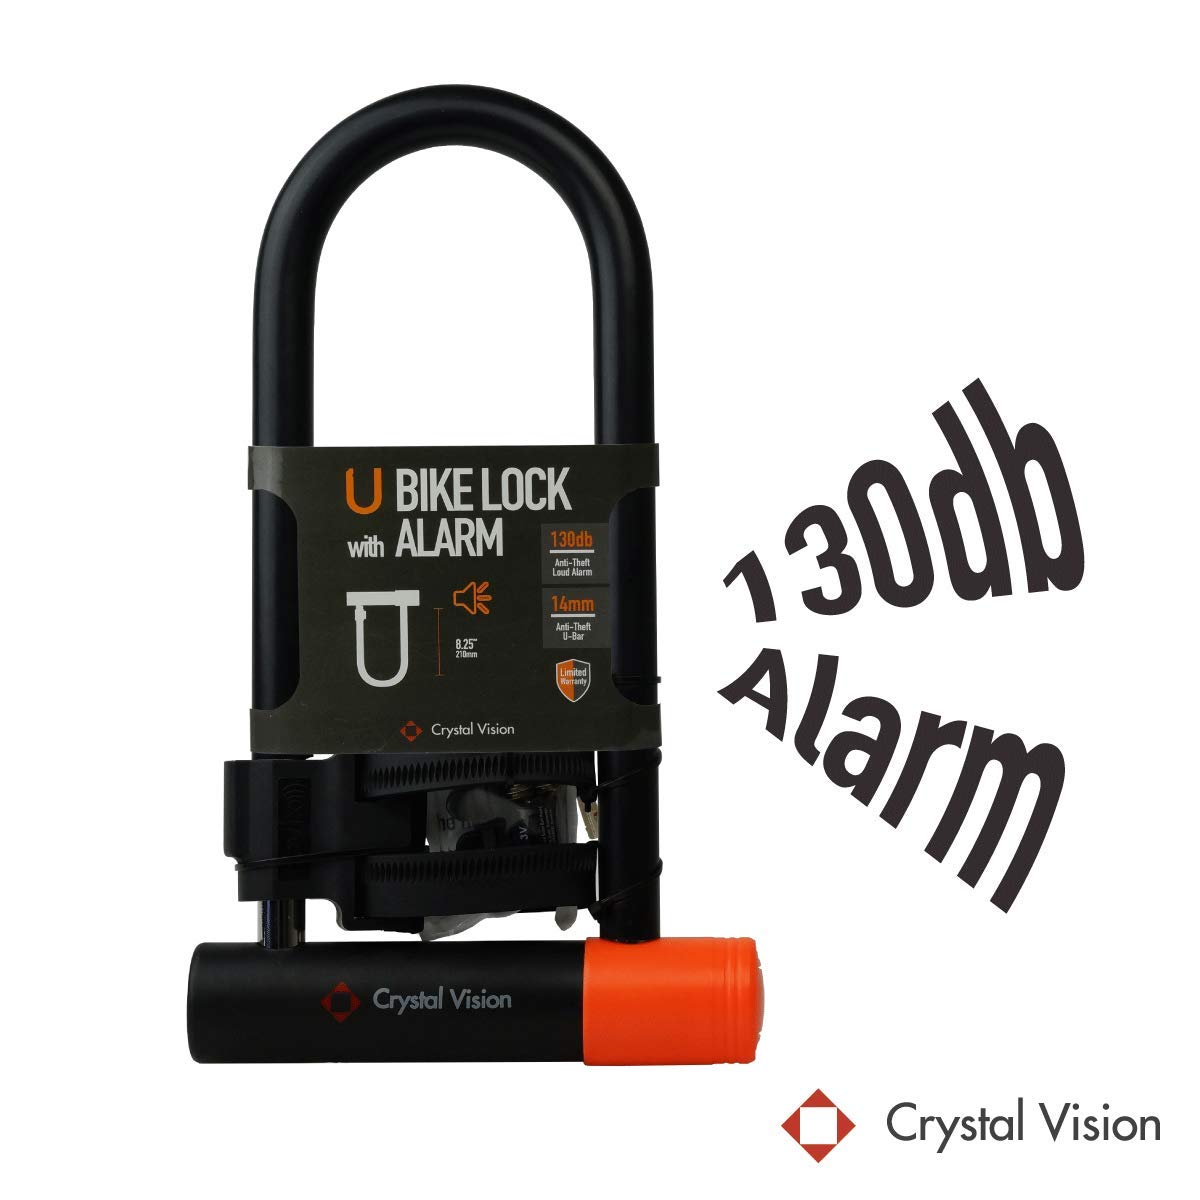 Crystal Vision SHBLA Weather Proof Anti Theft Loud 130db Alarm 14mm Heavy Duty Bike U Lock with Mount Holder. Auto Arm & Disarm, Alarm Lock, Siren Lock, Bike Alarm Lock, Road Bike,Mountain Bike by Crystal Vision Technology